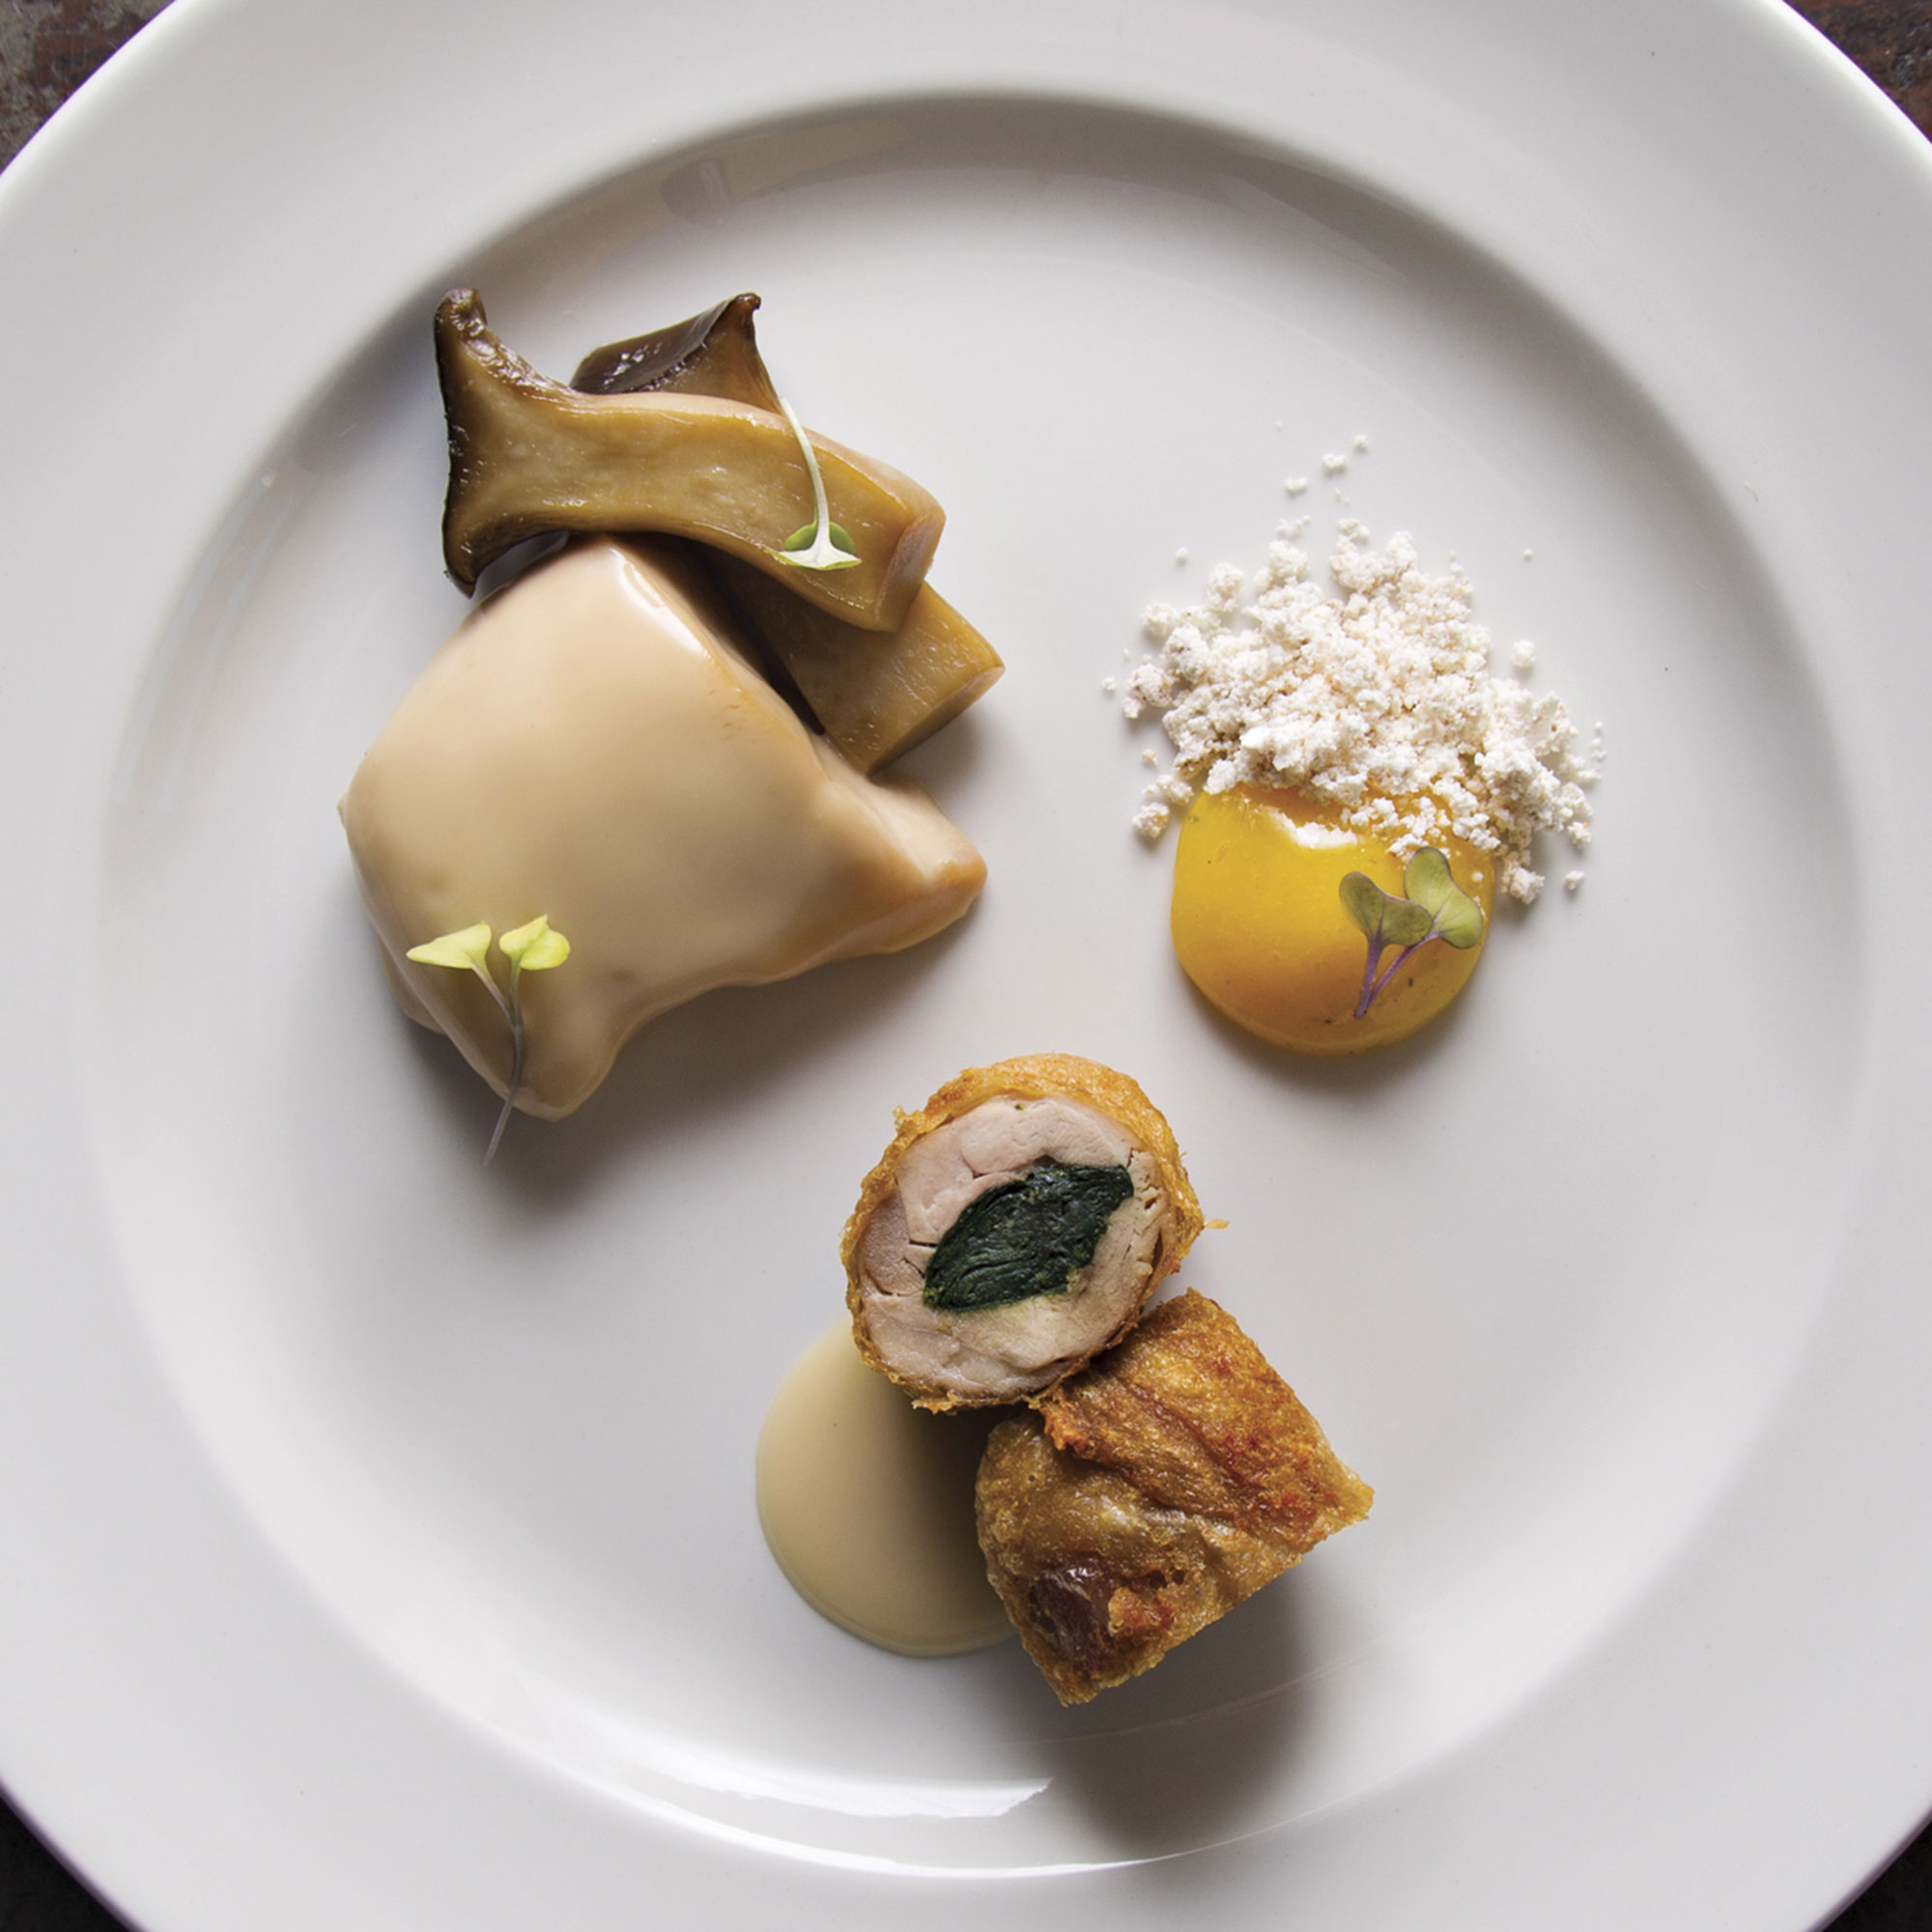 poached Jidori chicken breast and thigh roulade with braised king trumpet mushrooms and 151-degree egg yolk